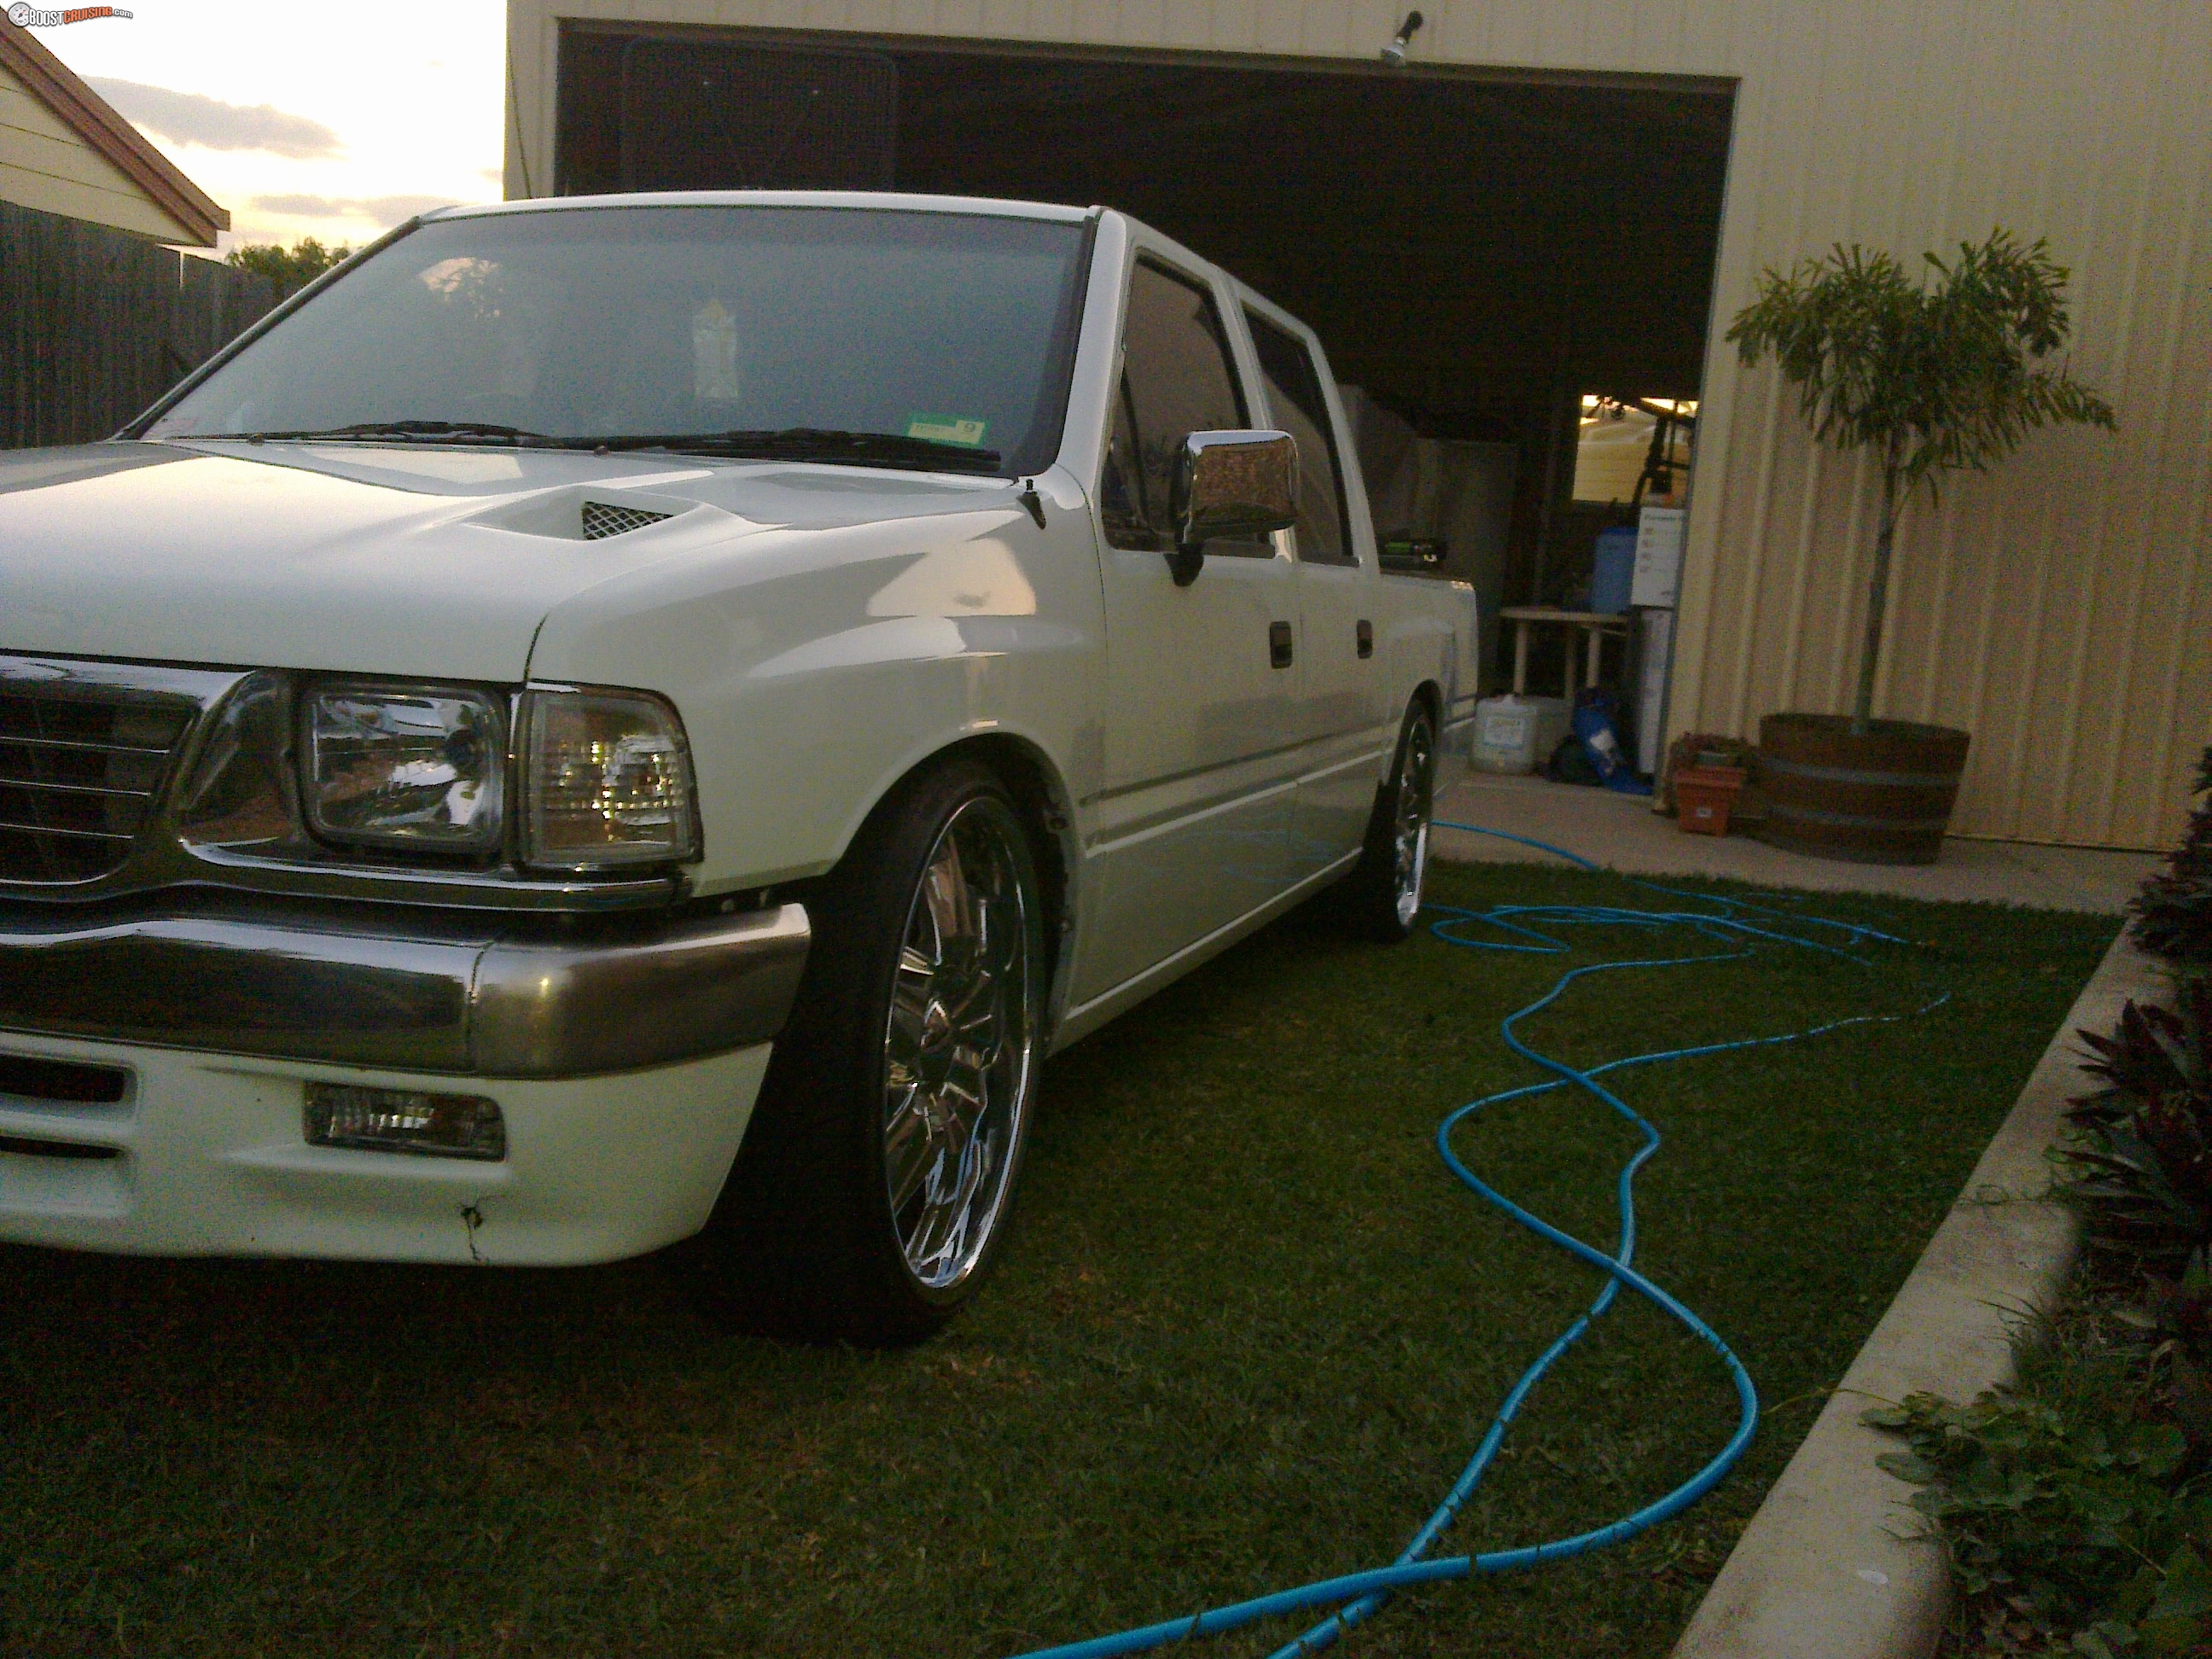 1990 Holden Rodeo Minitruck - BoostCruising